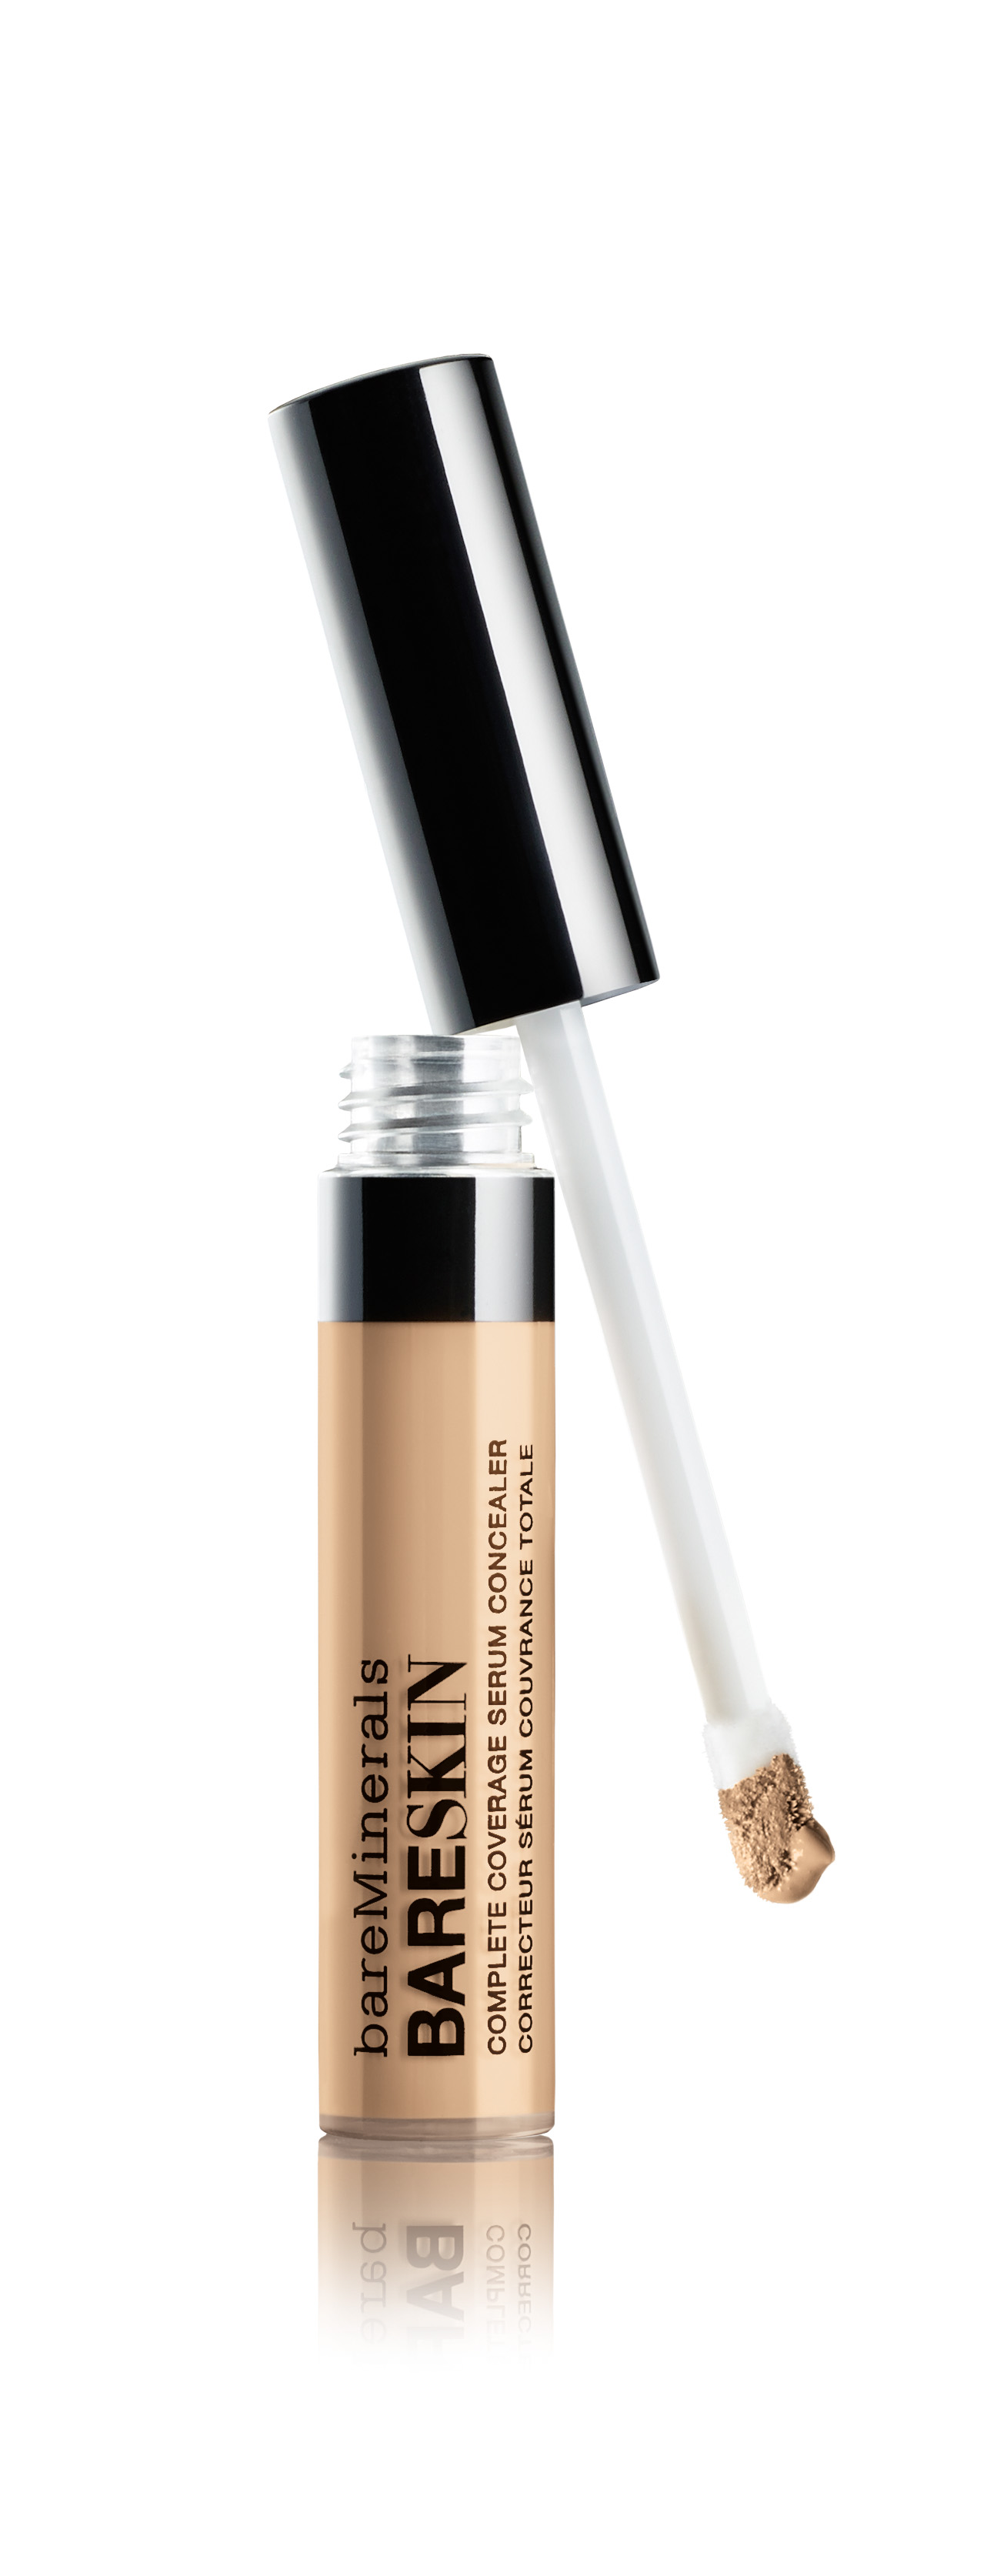 bareskin_Concealer_Medium_Stylized